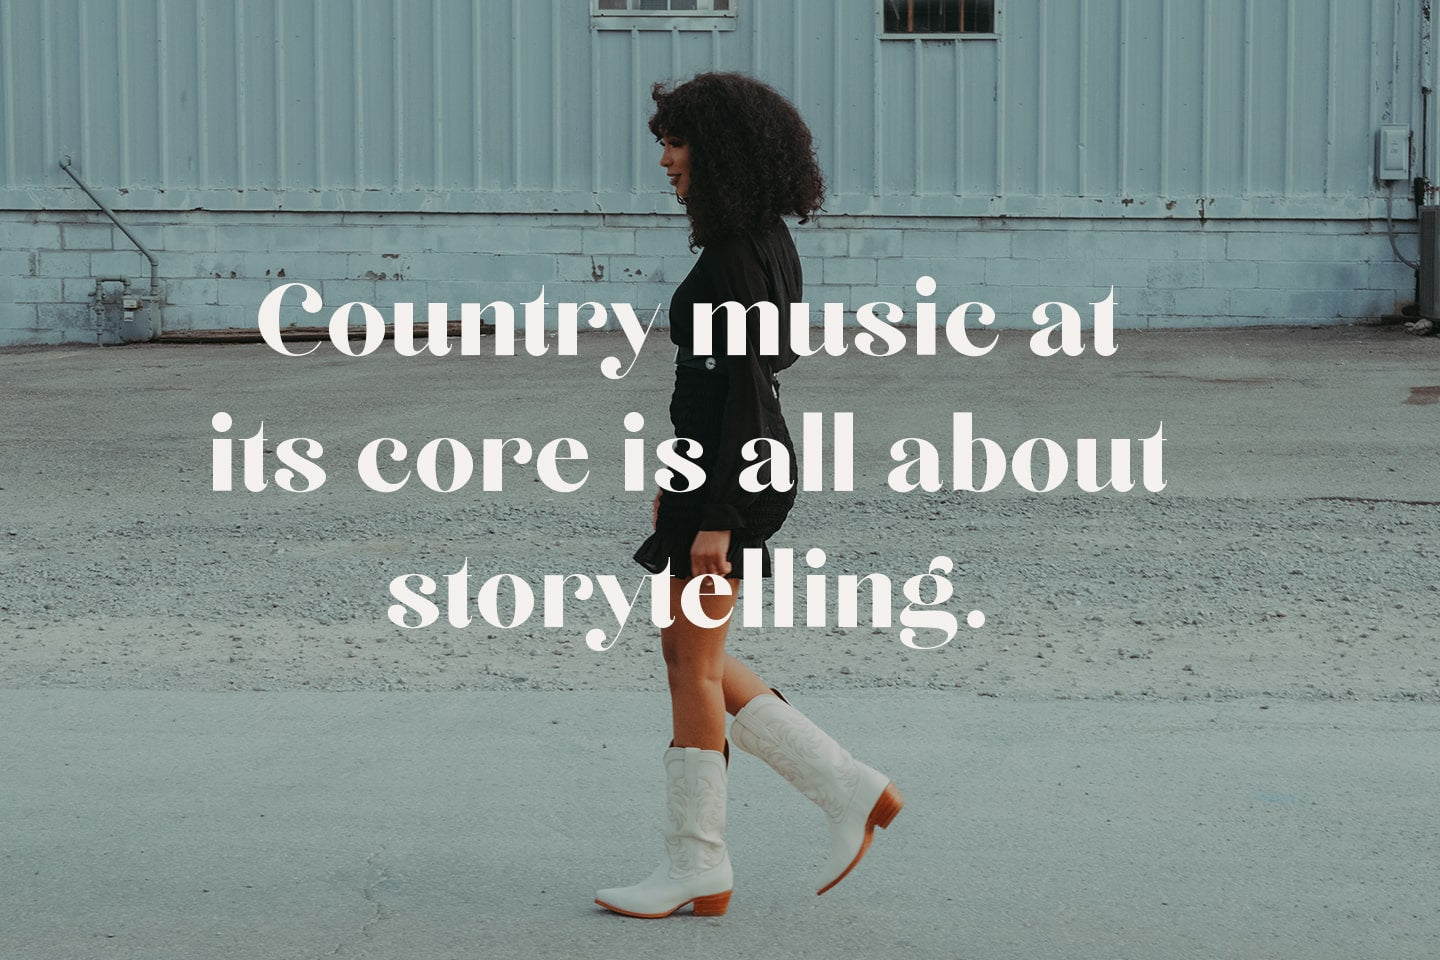 Country music is about storytelling